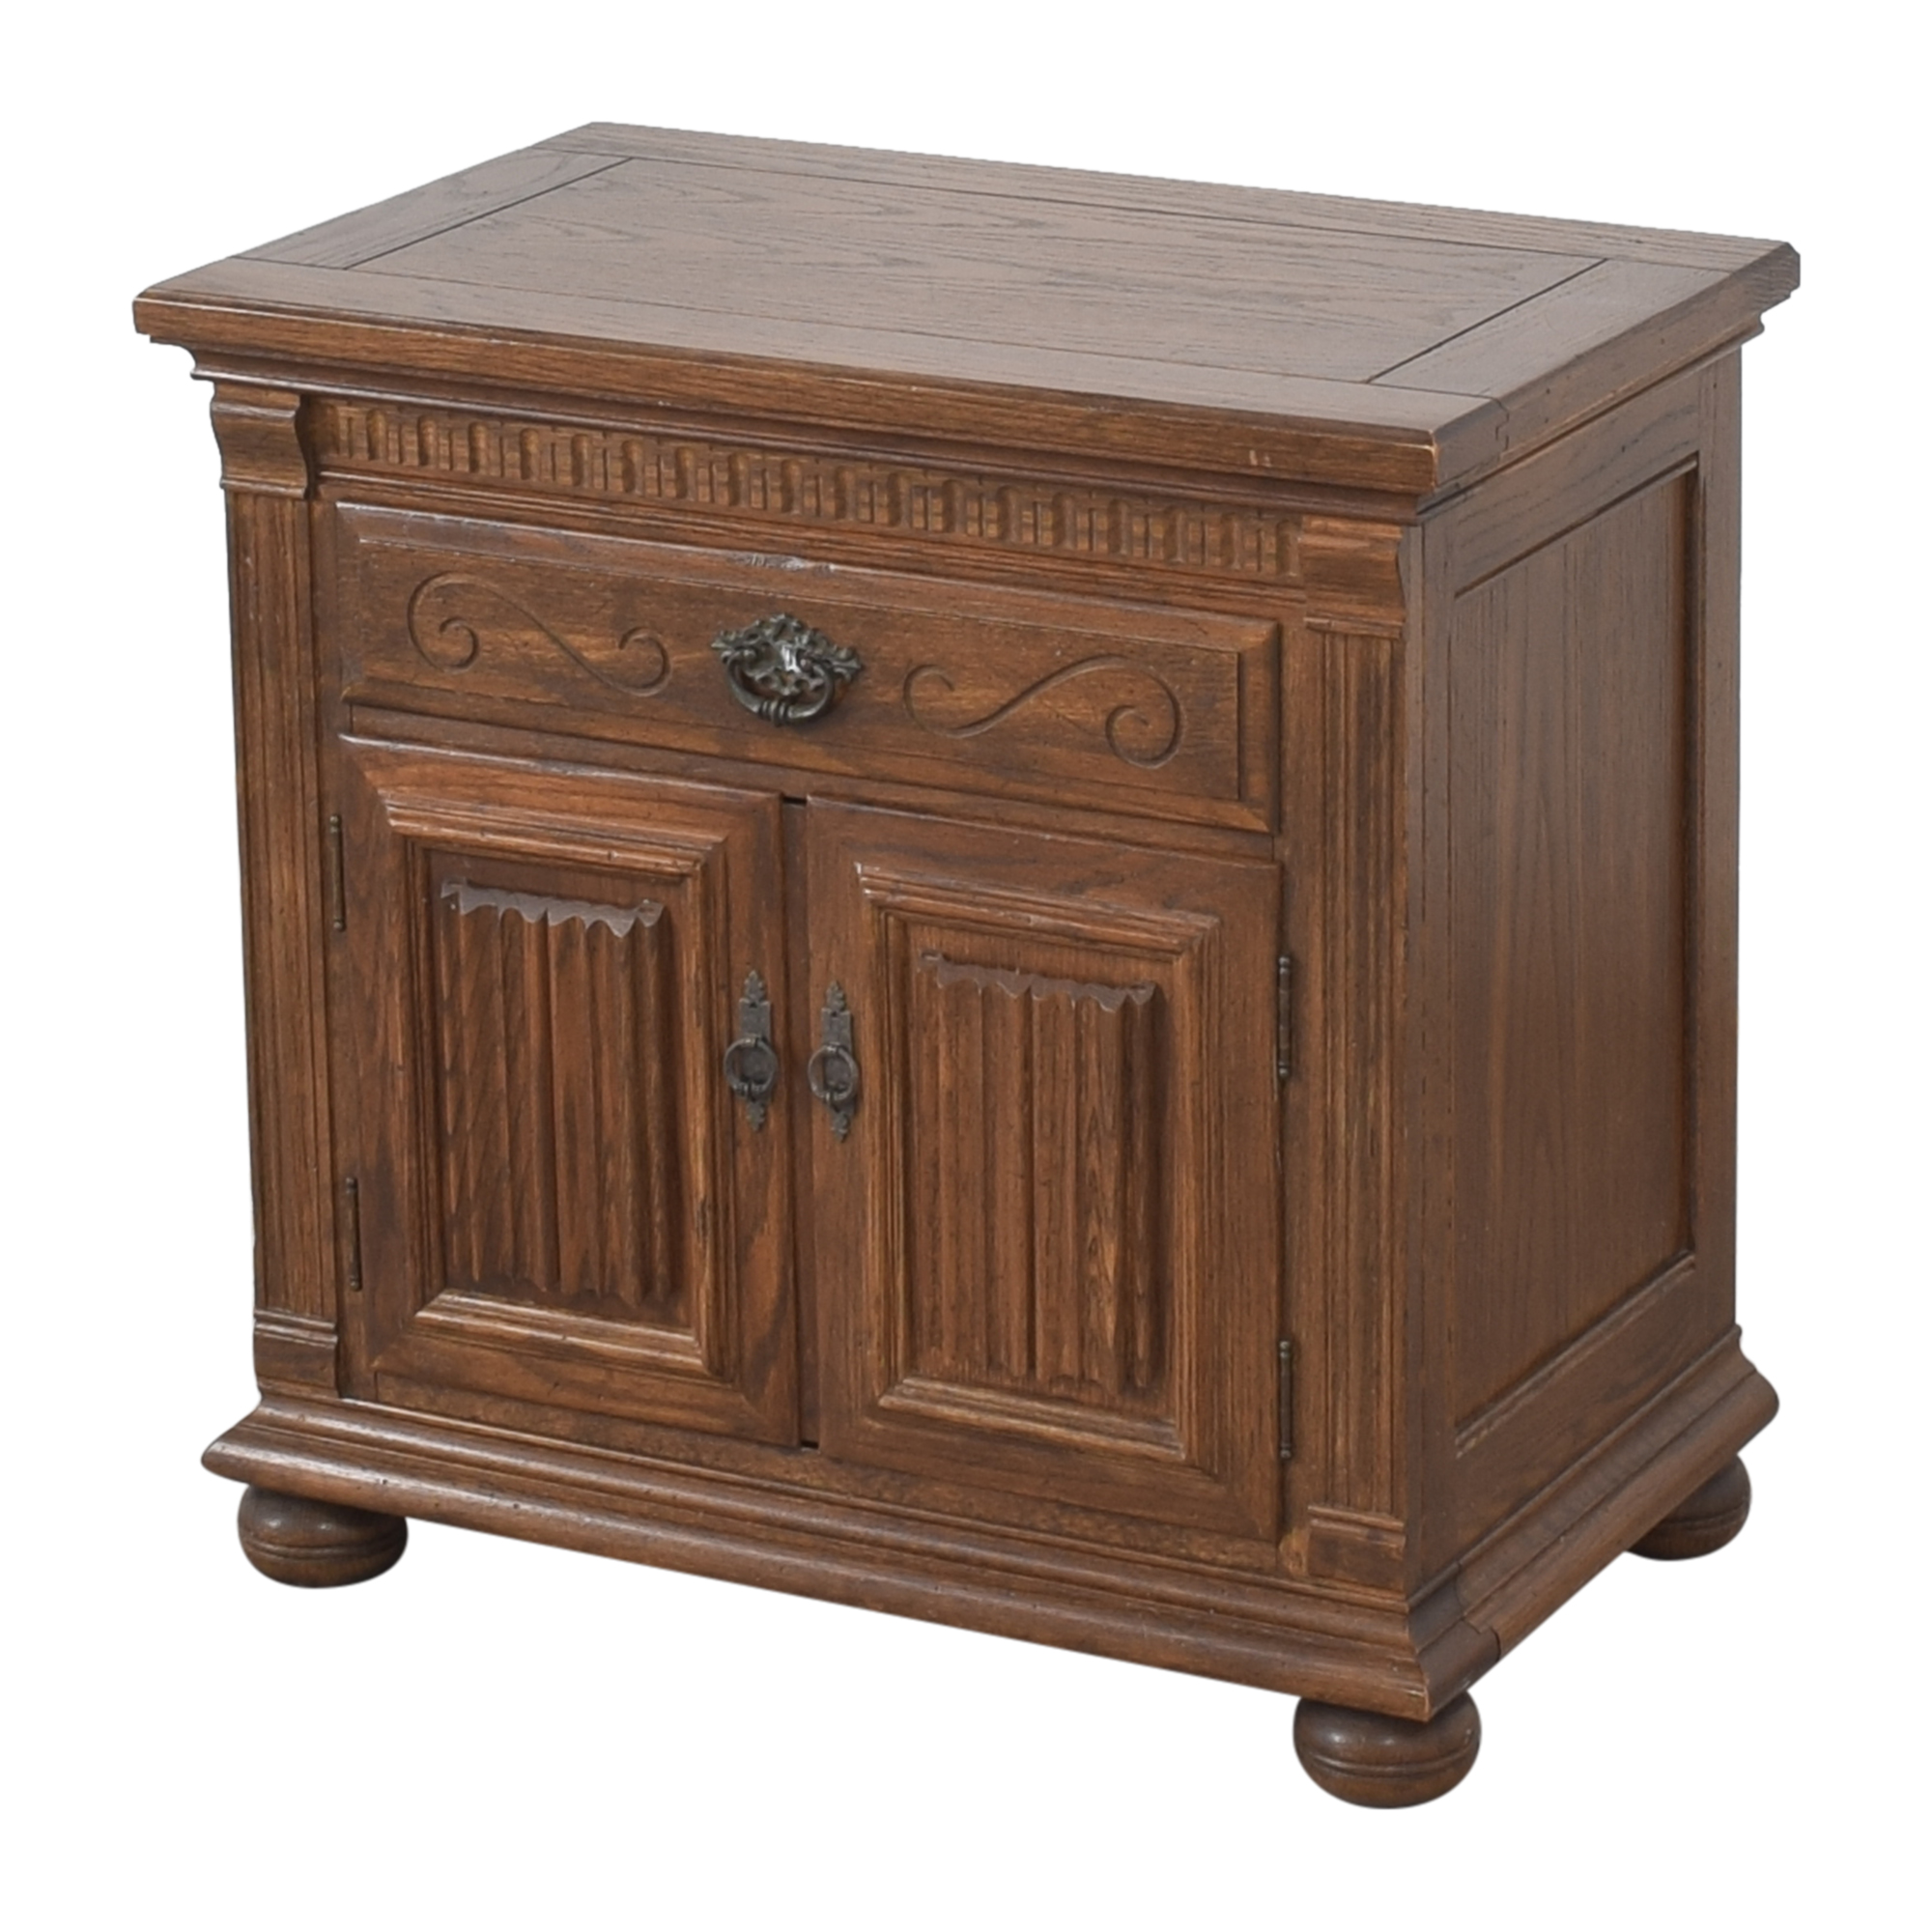 Ethan Allen Ethan Allen Royal Charter Commode Nightstand  price